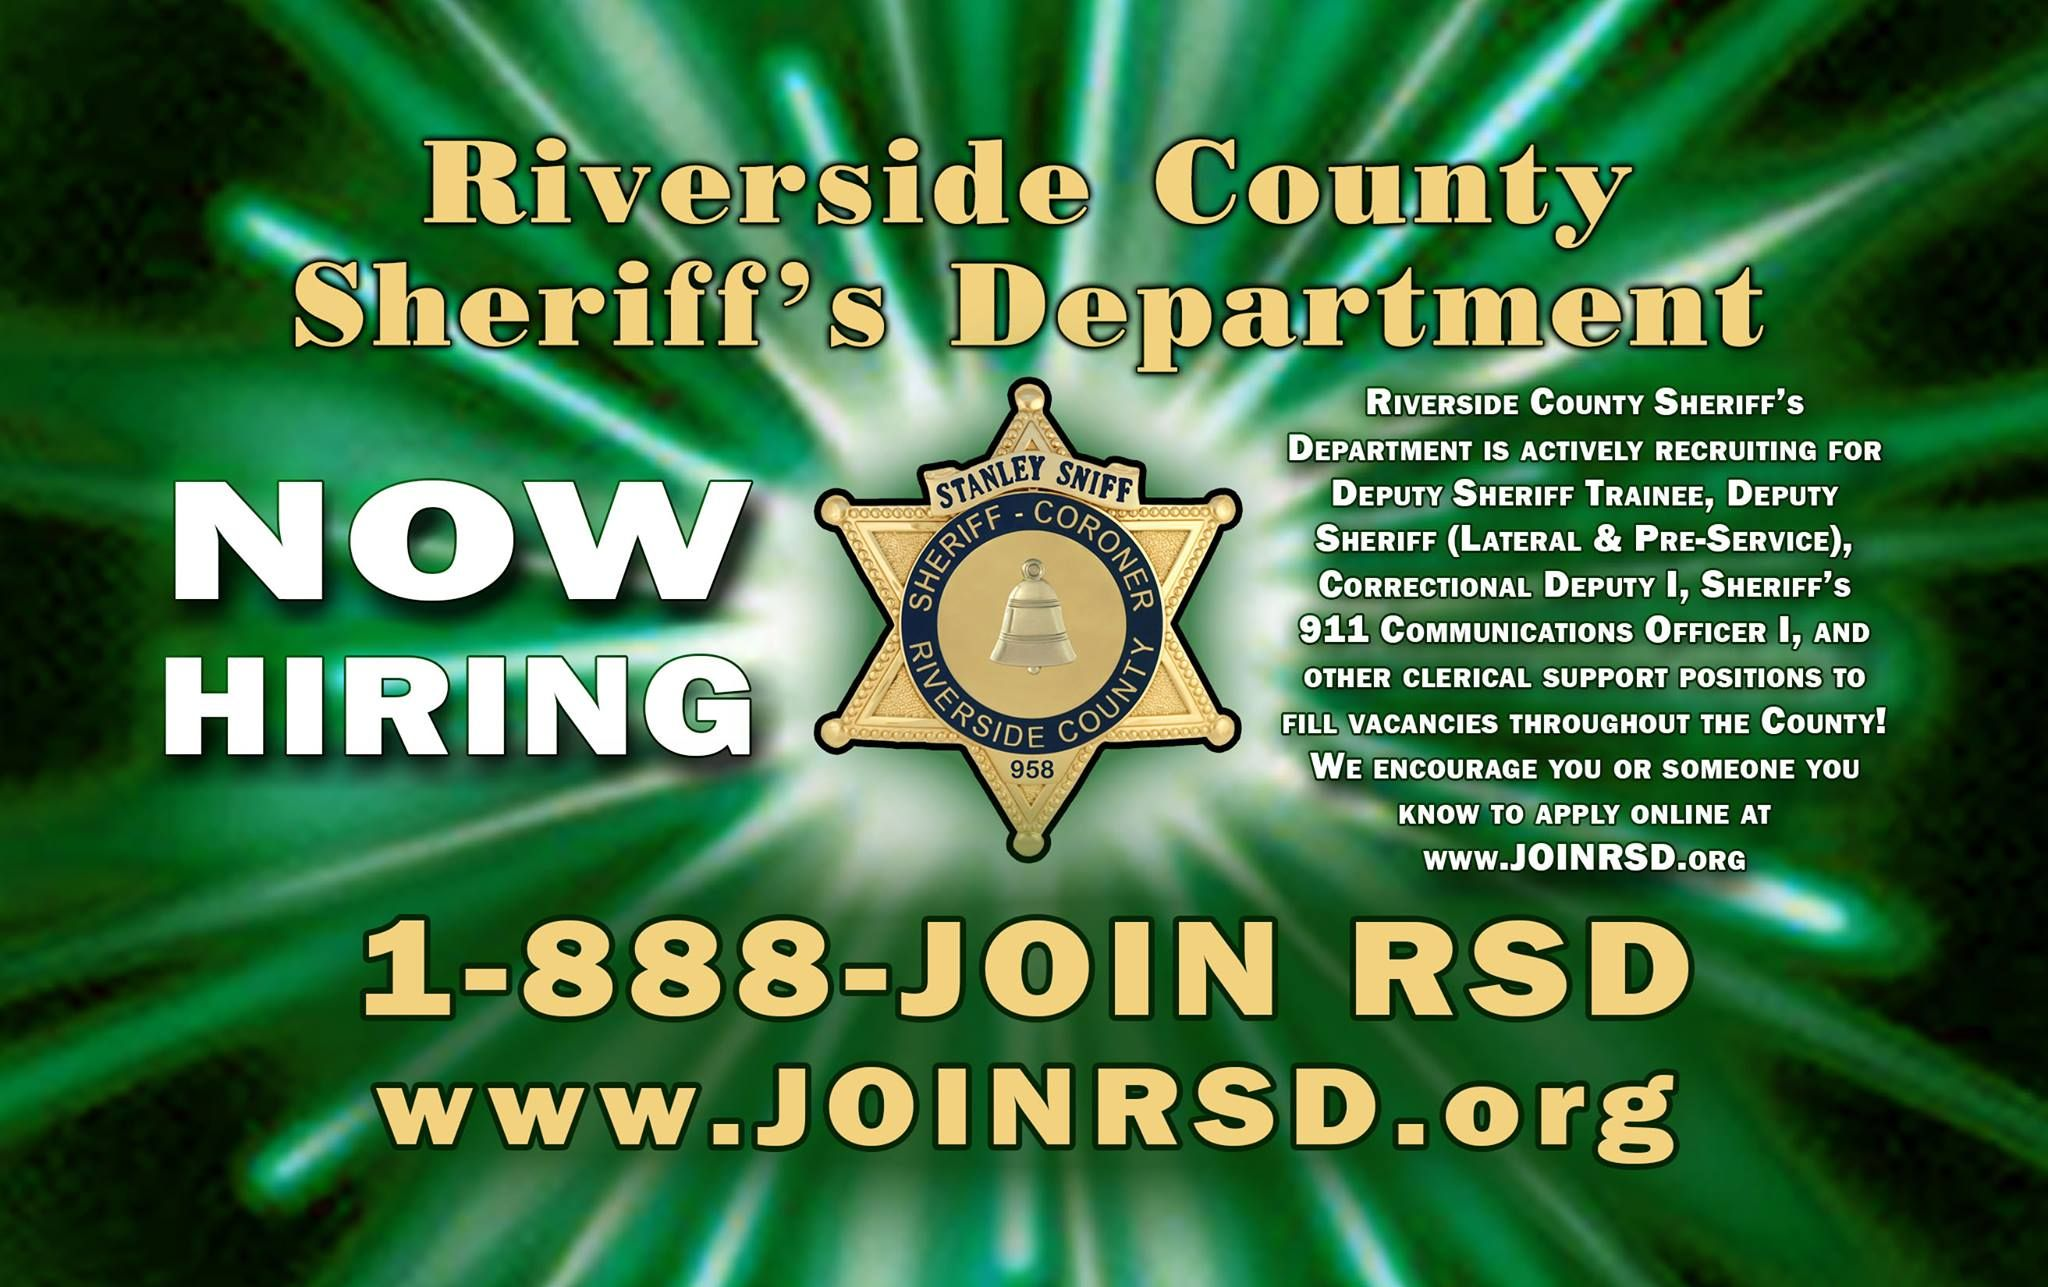 County of riverside sheriffs department is now hiring